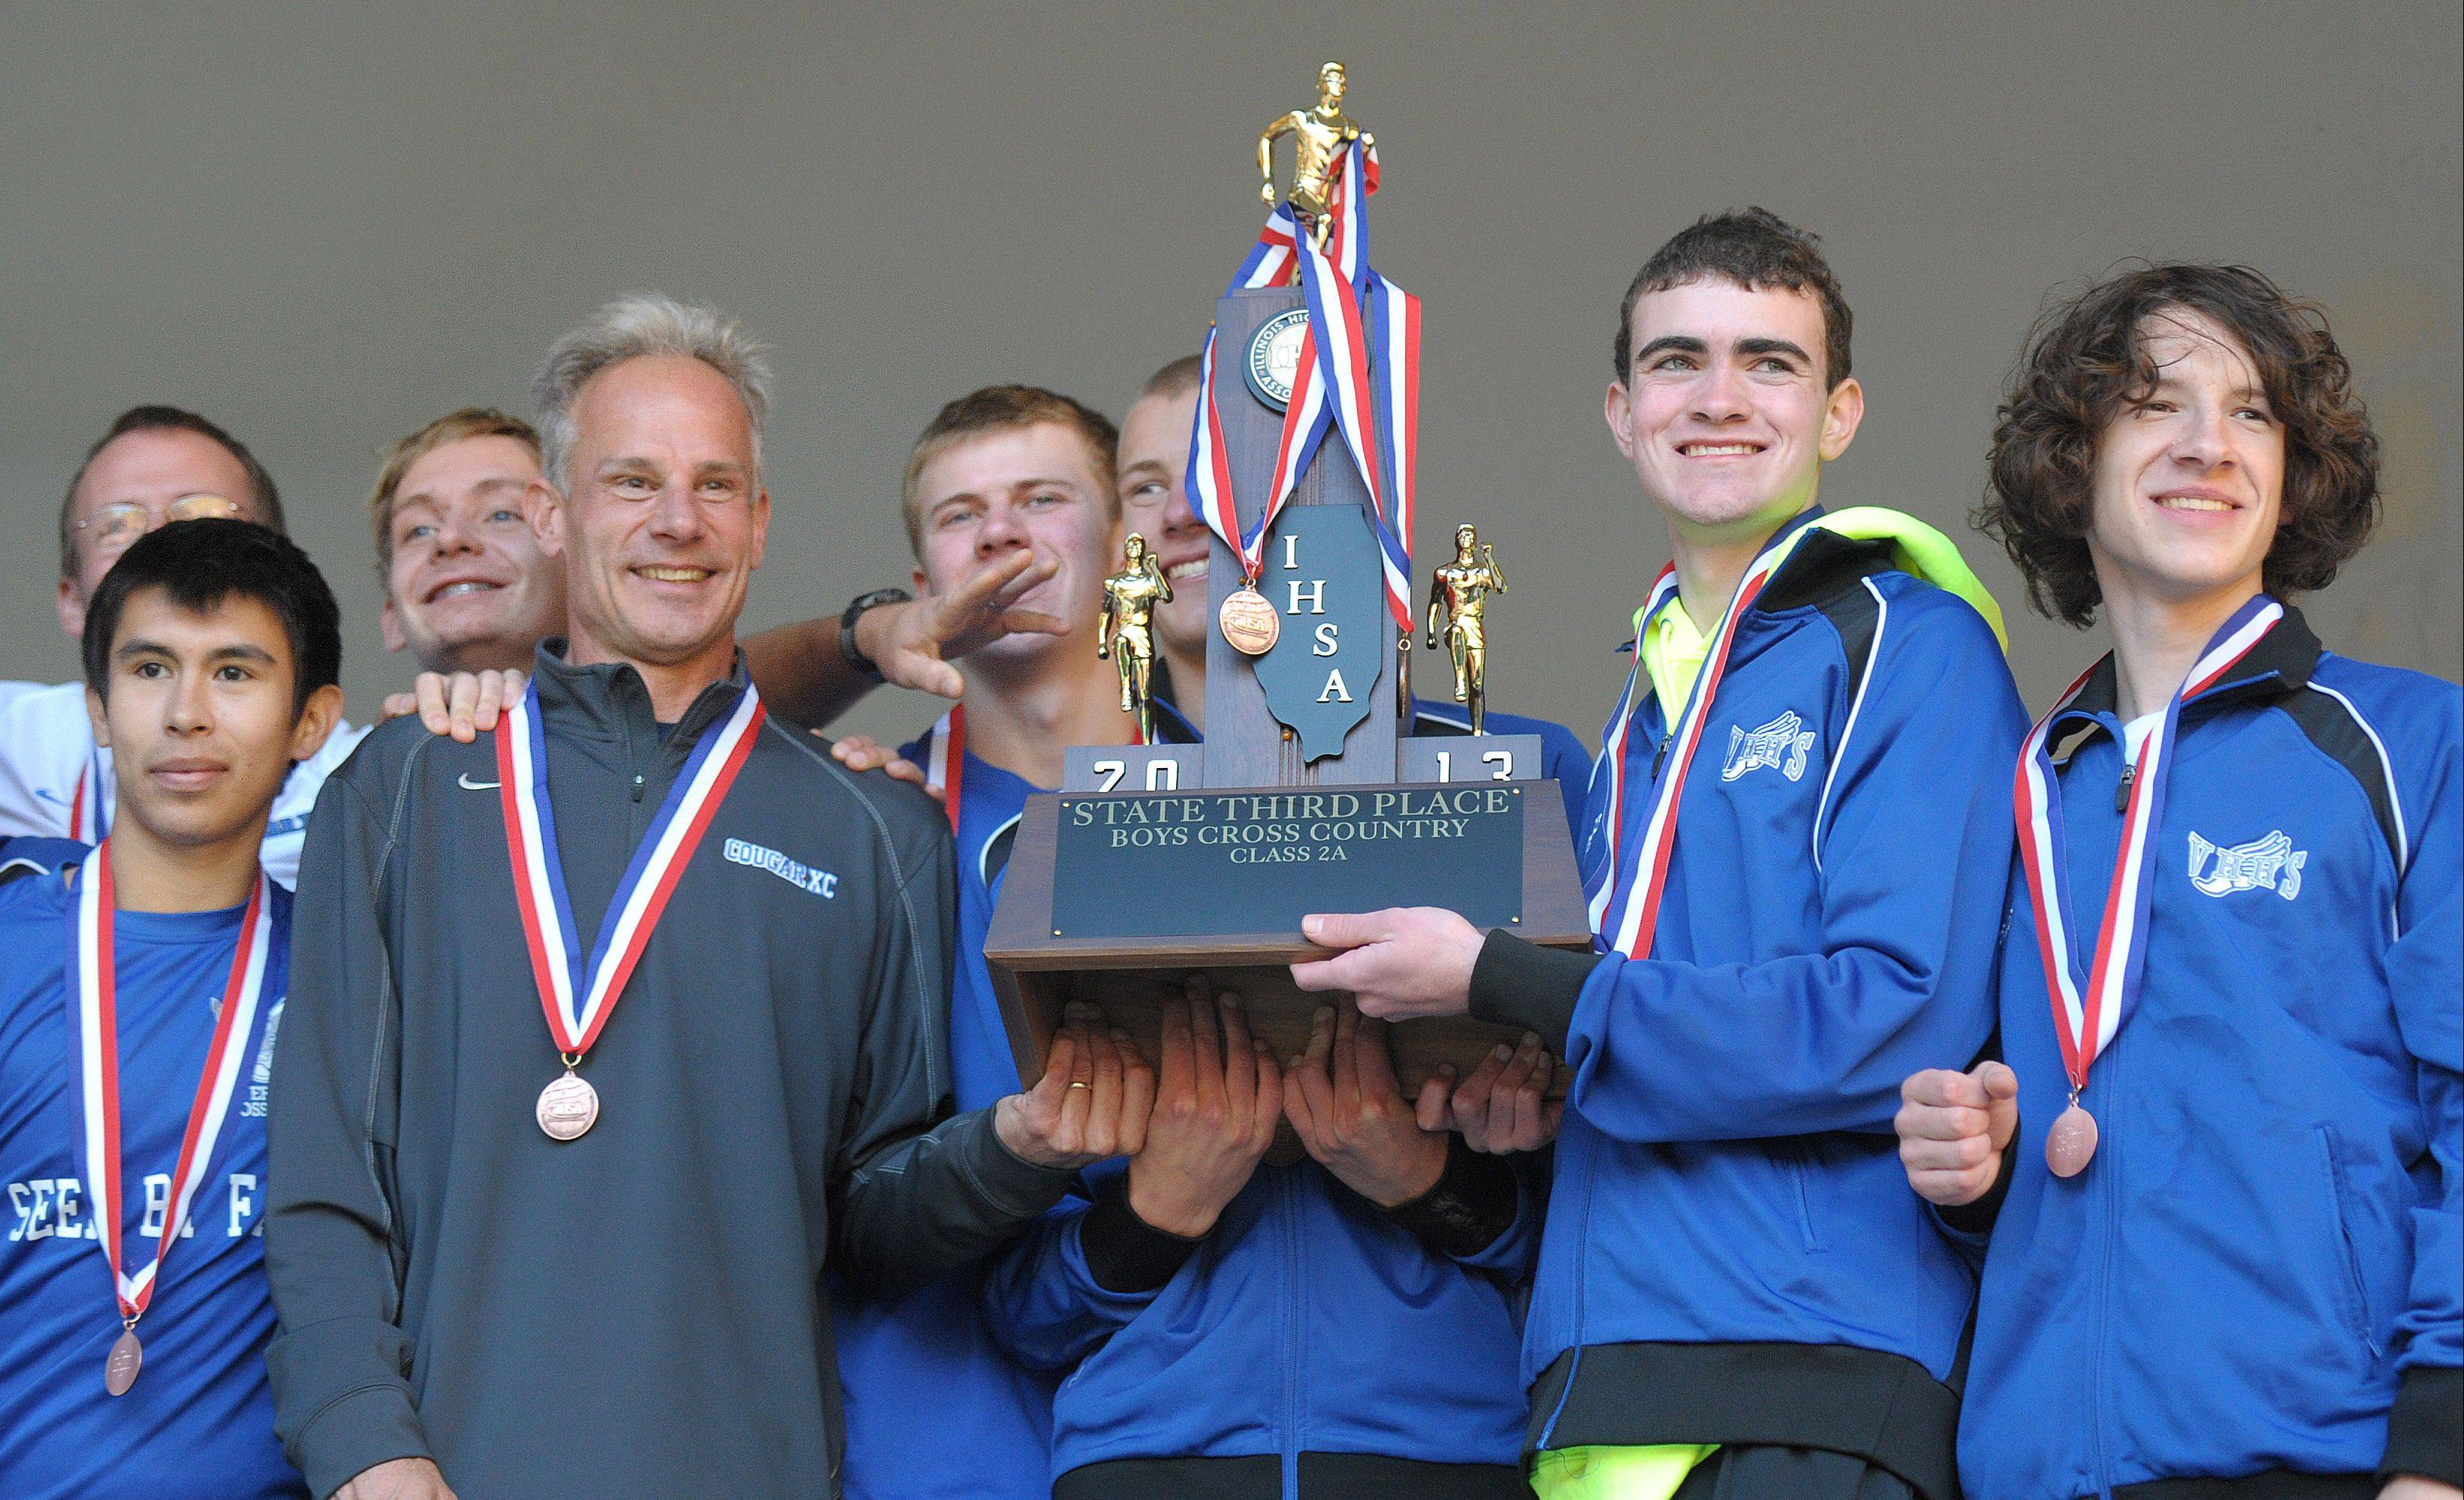 Whitney, Williamson lead Vernon Hills' trophy effort